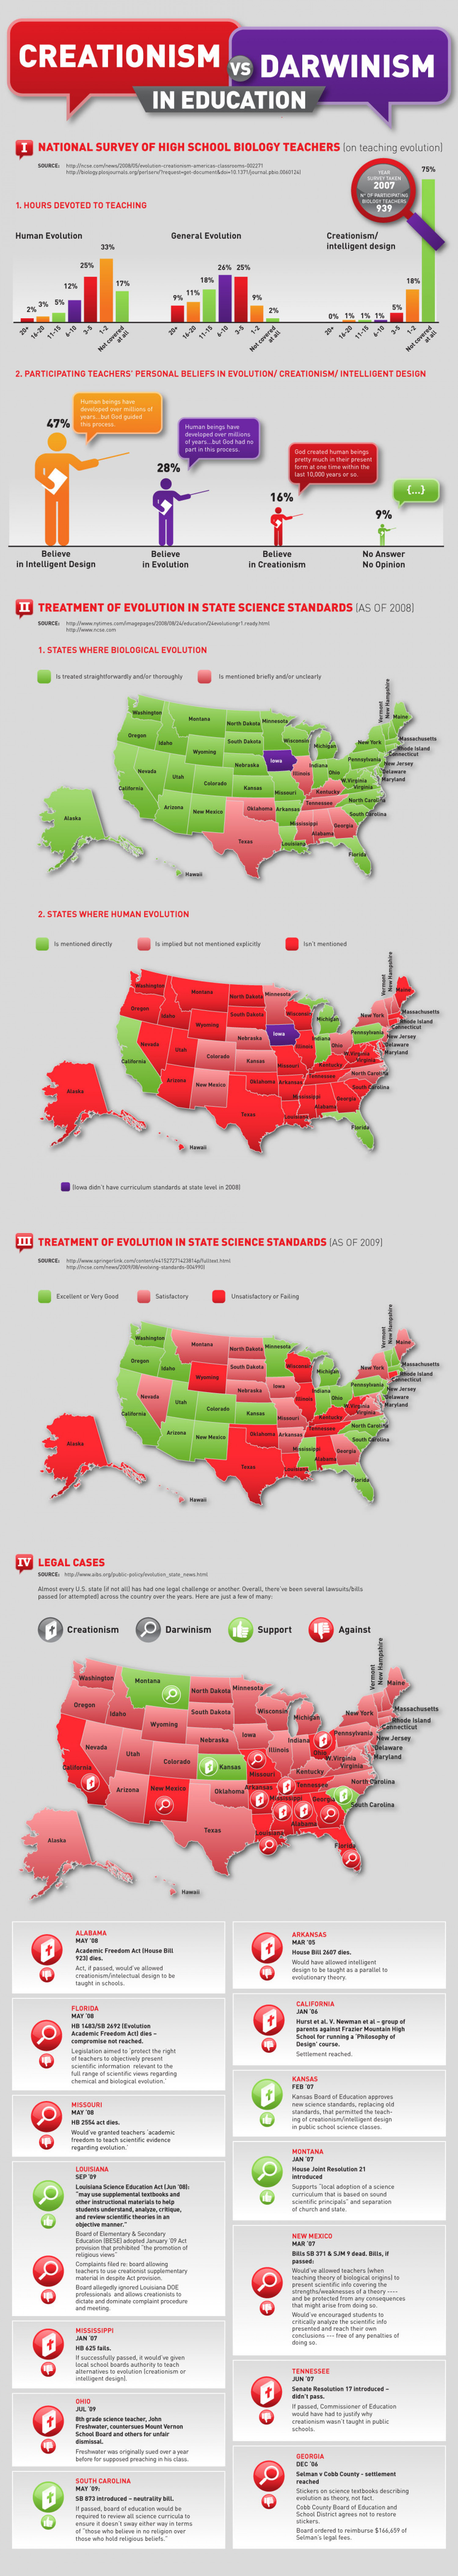 Creationism vs. Darwinism in Education Infographic